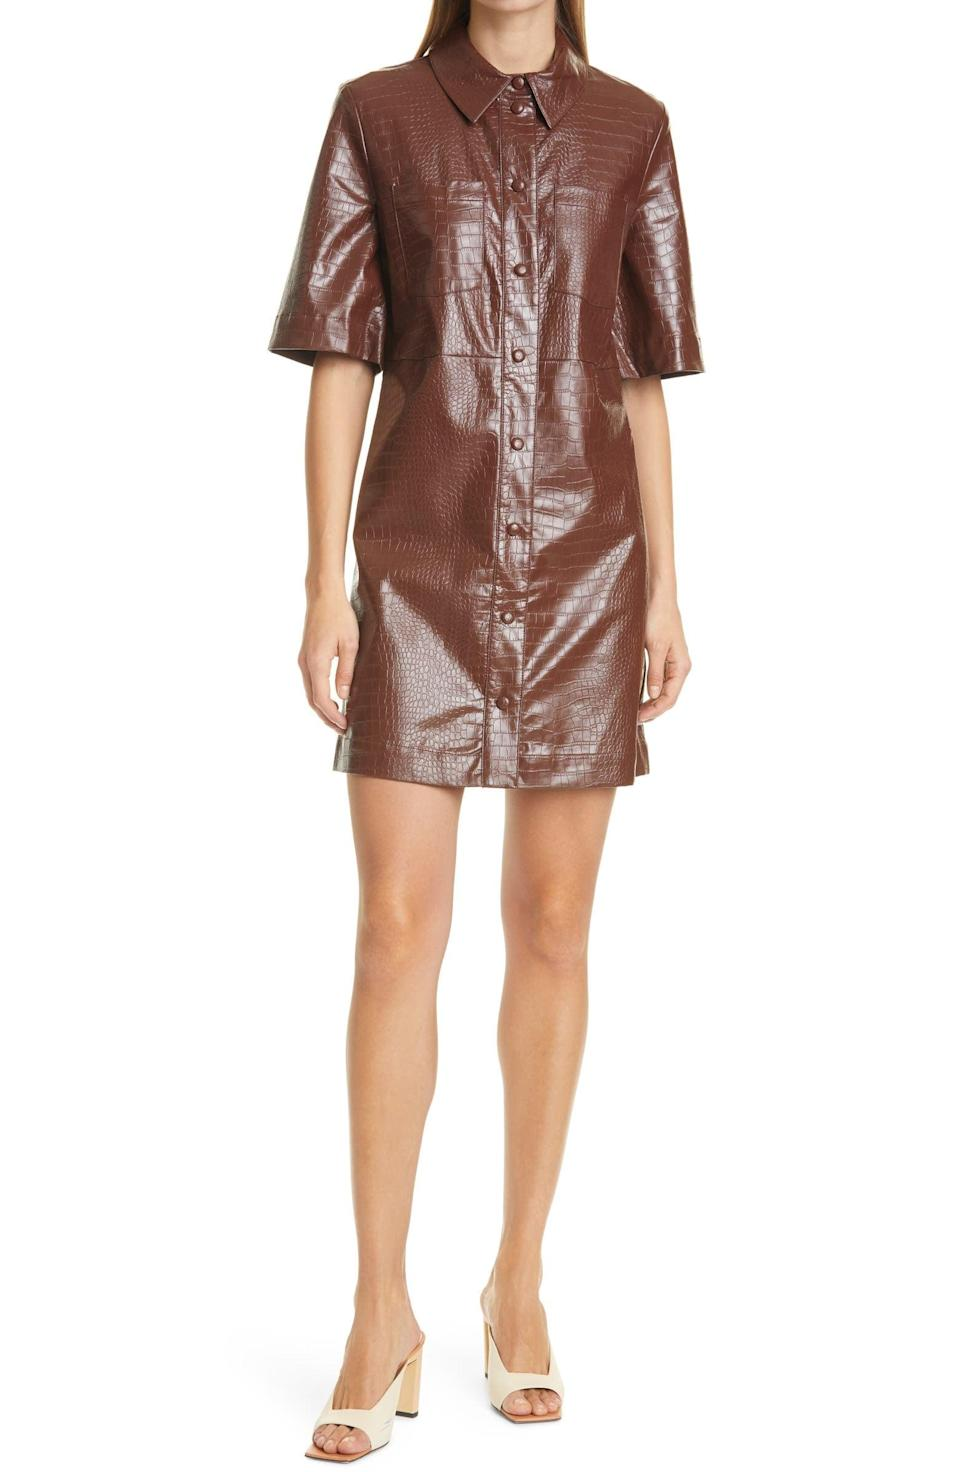 <p>Colorful leather started trending last year, and it's not going anywhere. Go ahead and experiment with it by opting for this <span>Samsoe Samsoe Myla Faux Leather Short Sleeve Shirtdress</span> ($113, originally $270).</p>